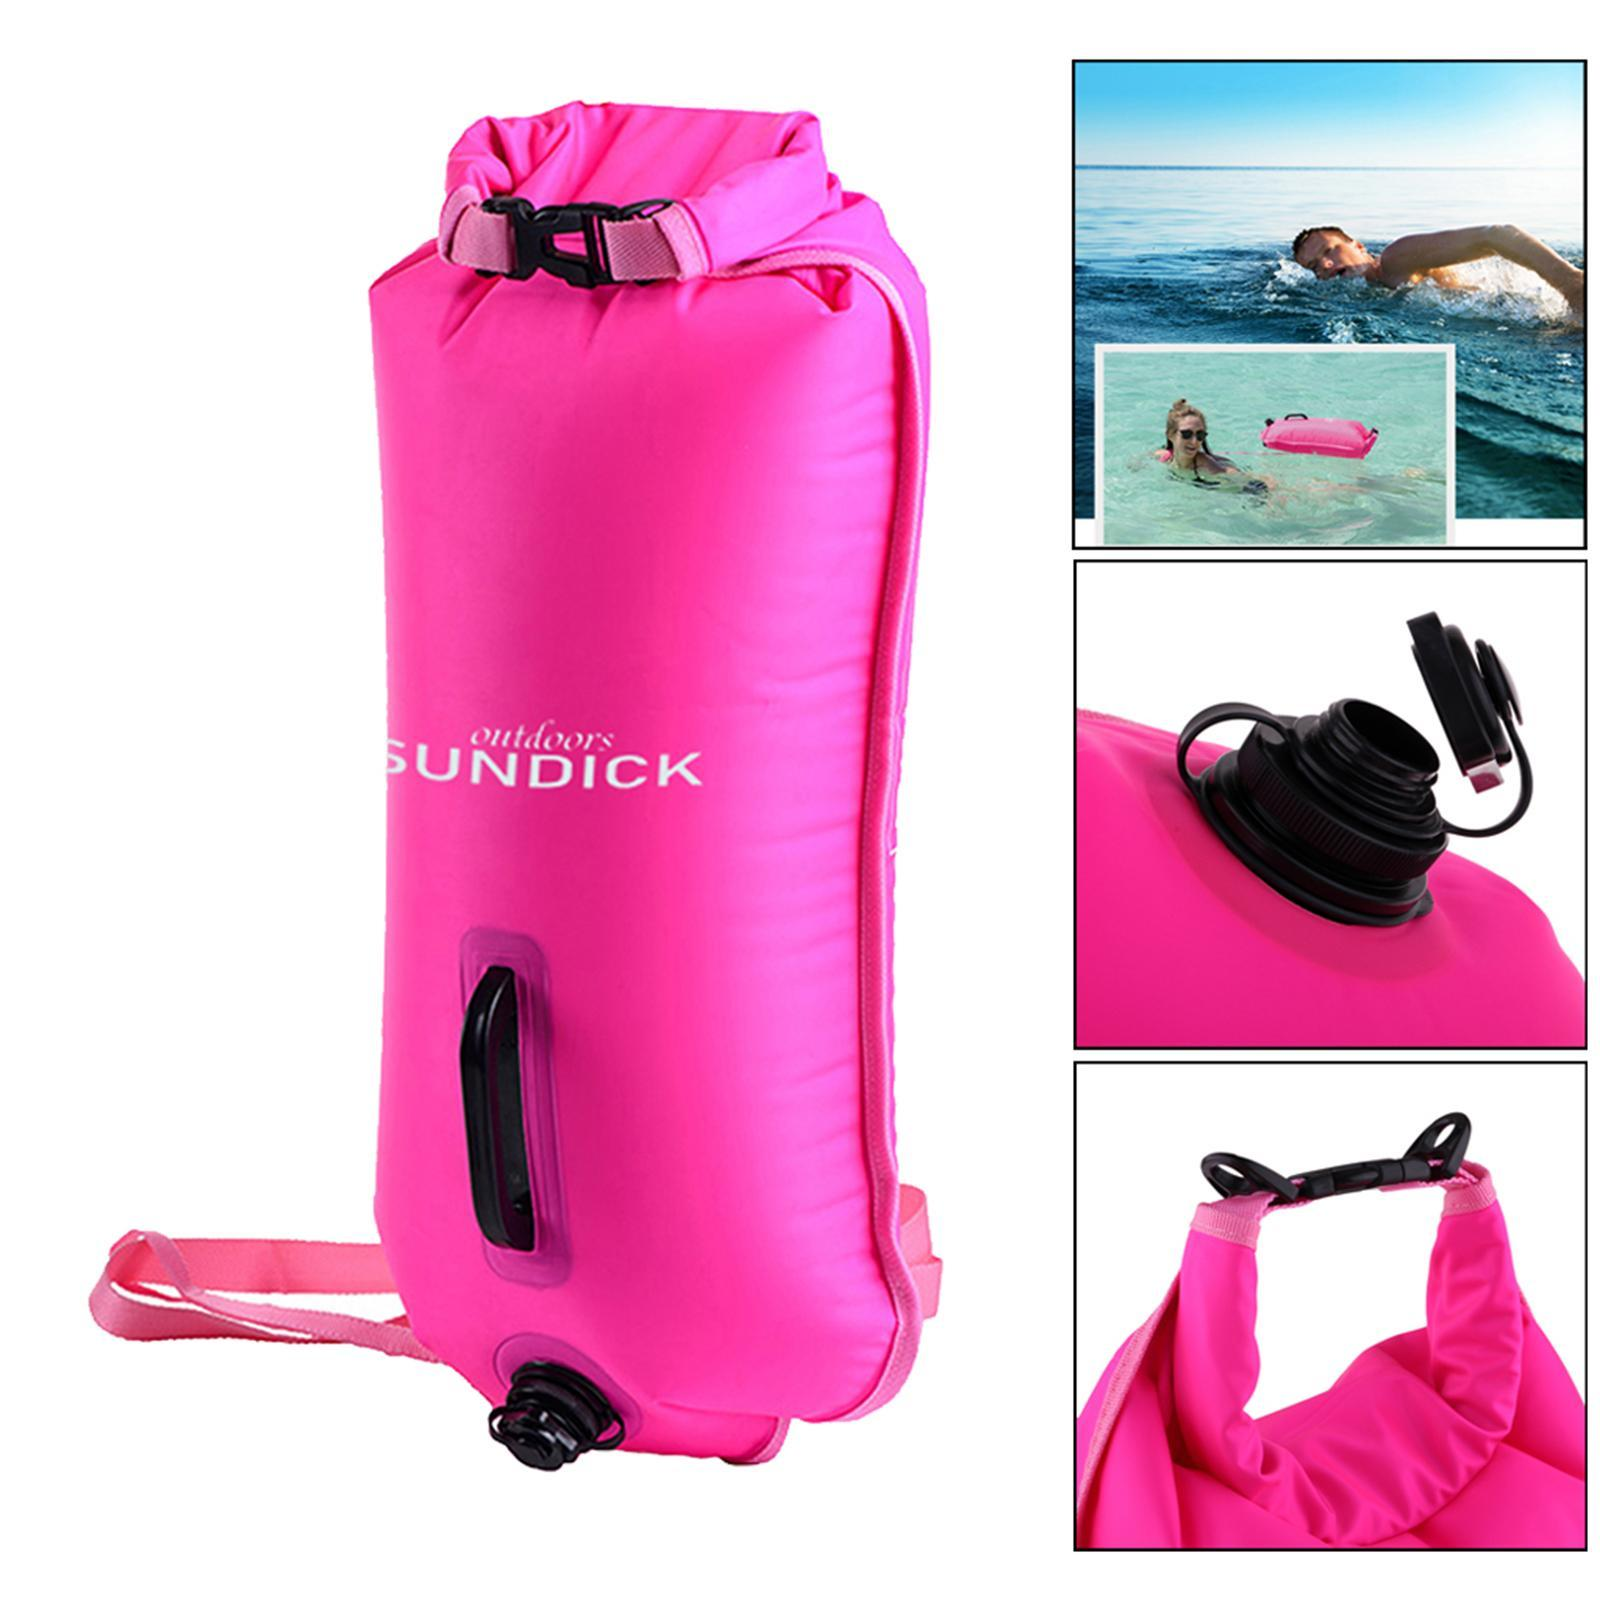 Safety-Swim-Buoy-Dry-Bag-Tow-Float-for-Open-Water-Swimmer-Swimming-Training thumbnail 11